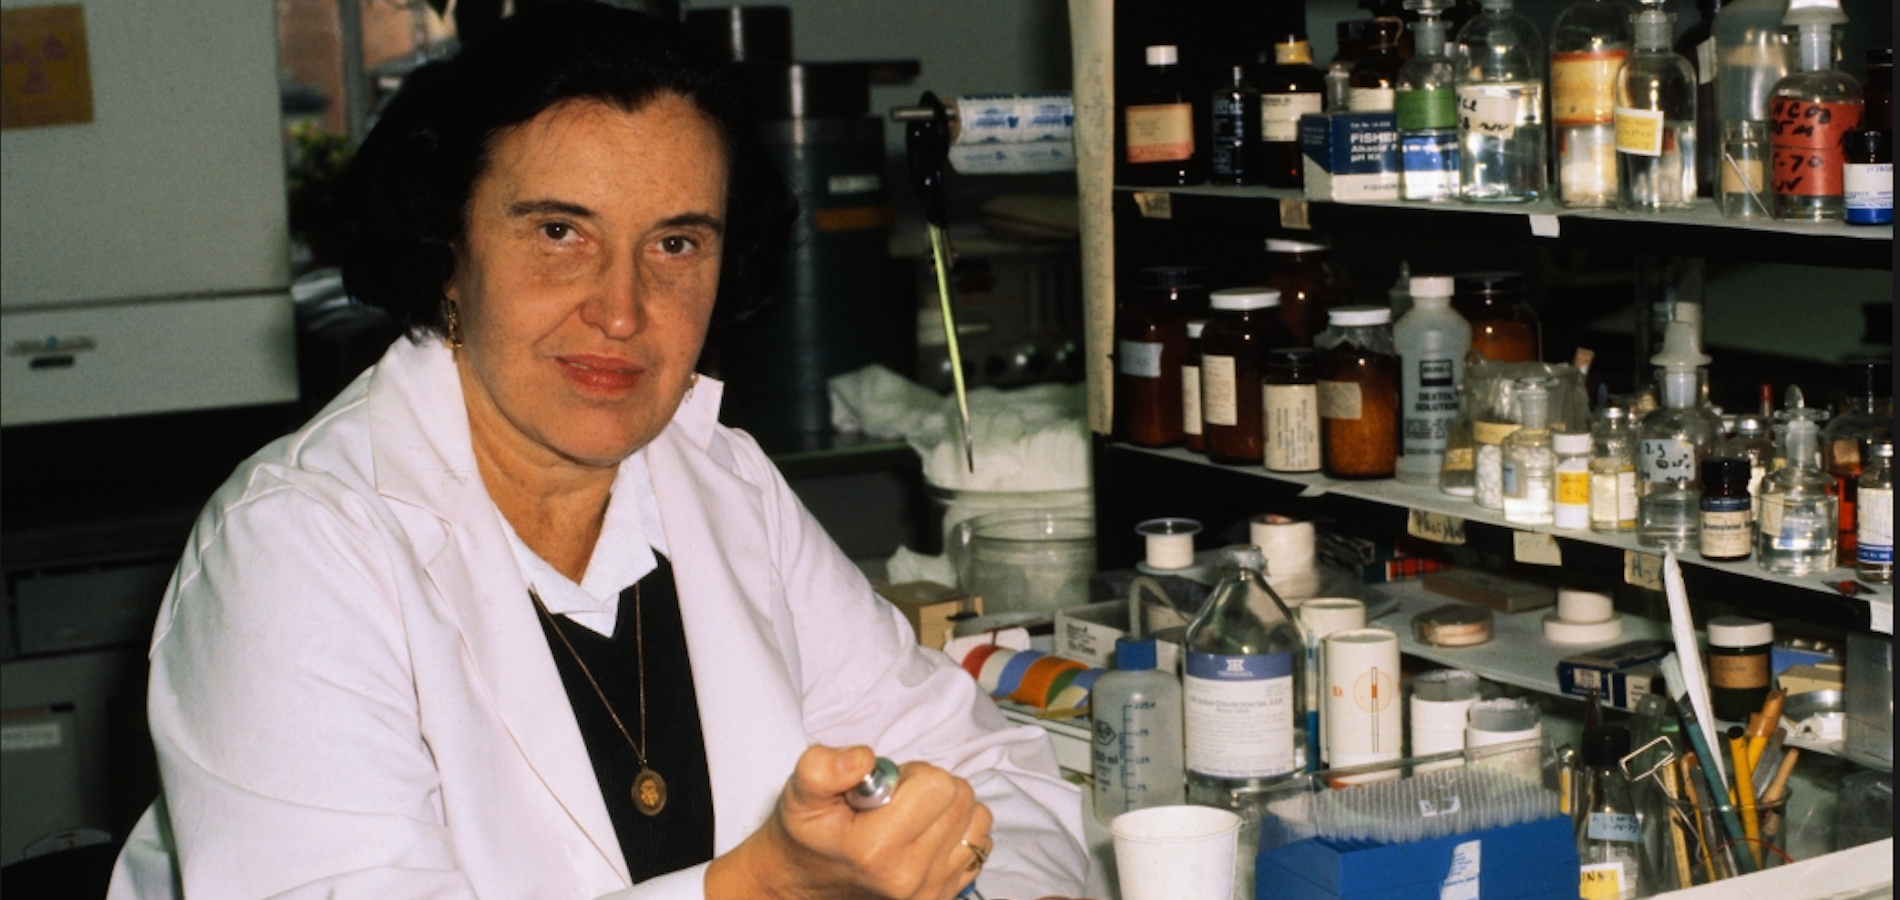 Rosalyn Yalow: The First Orthodox Jewish Woman to Win A Nobel Prize